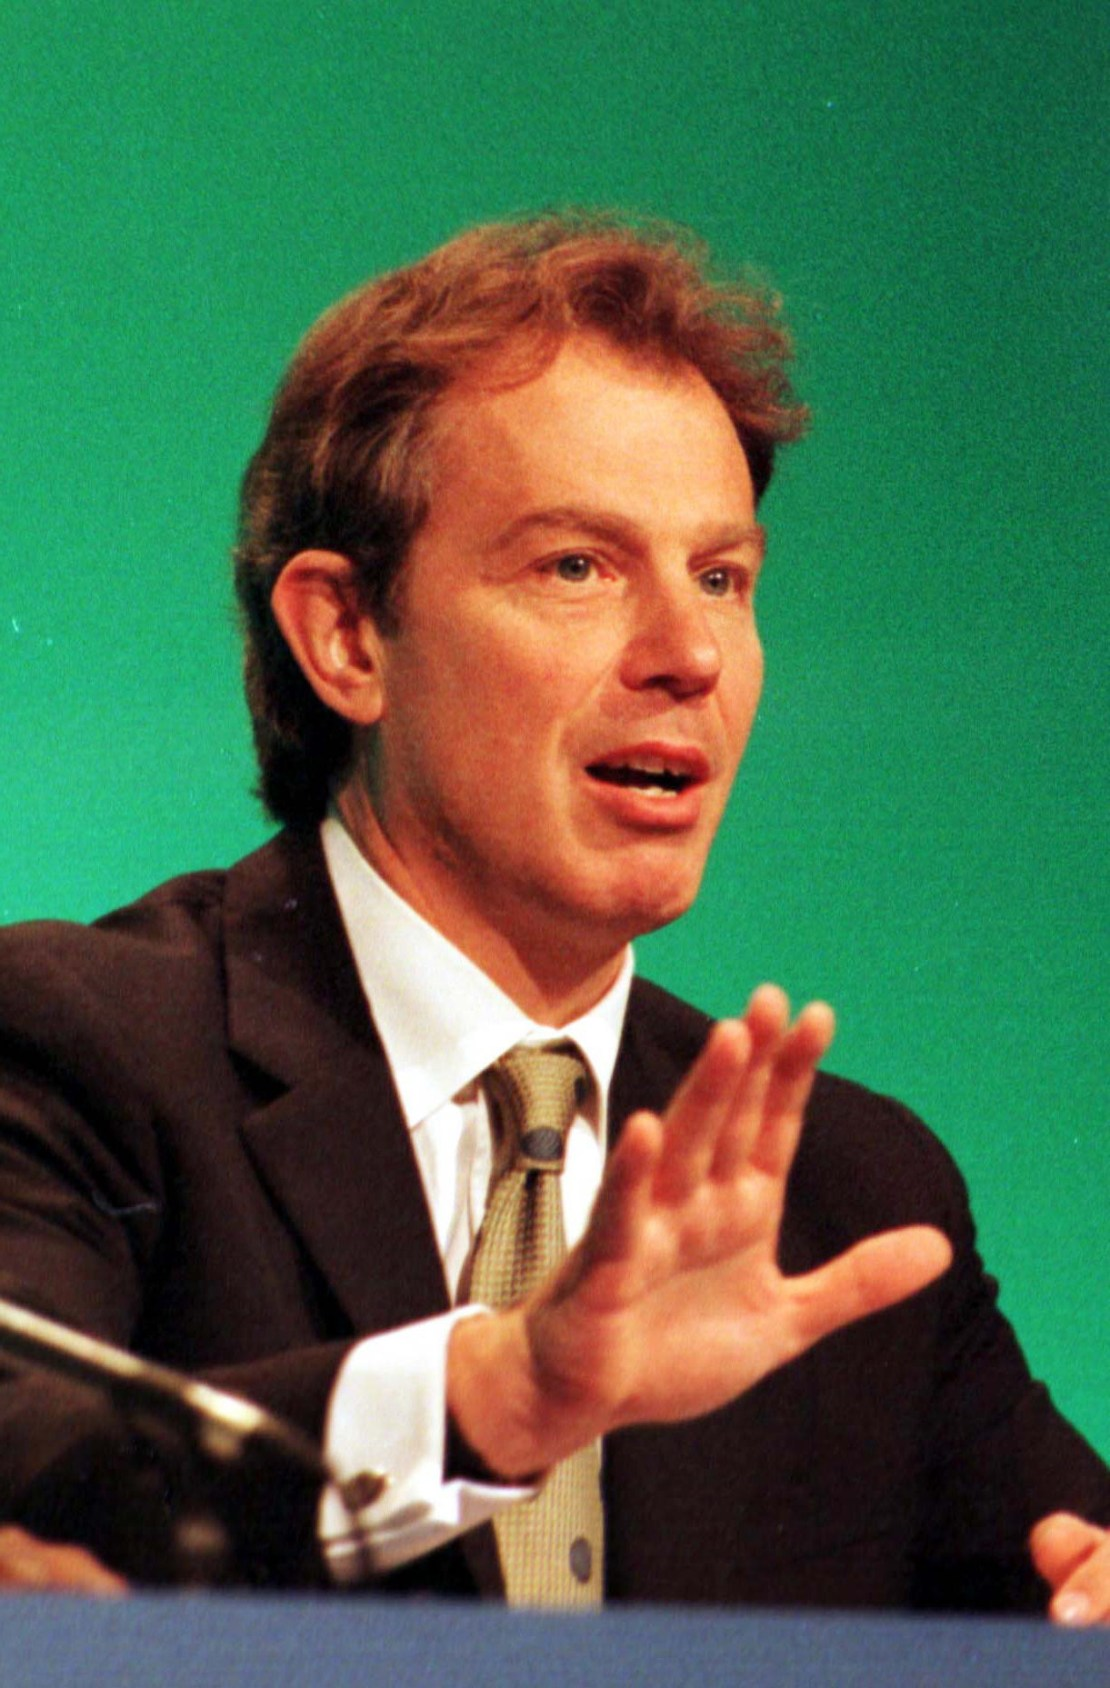 The idea was proposed to Tony Blair in 1997 just two days after Diana died in a car crash